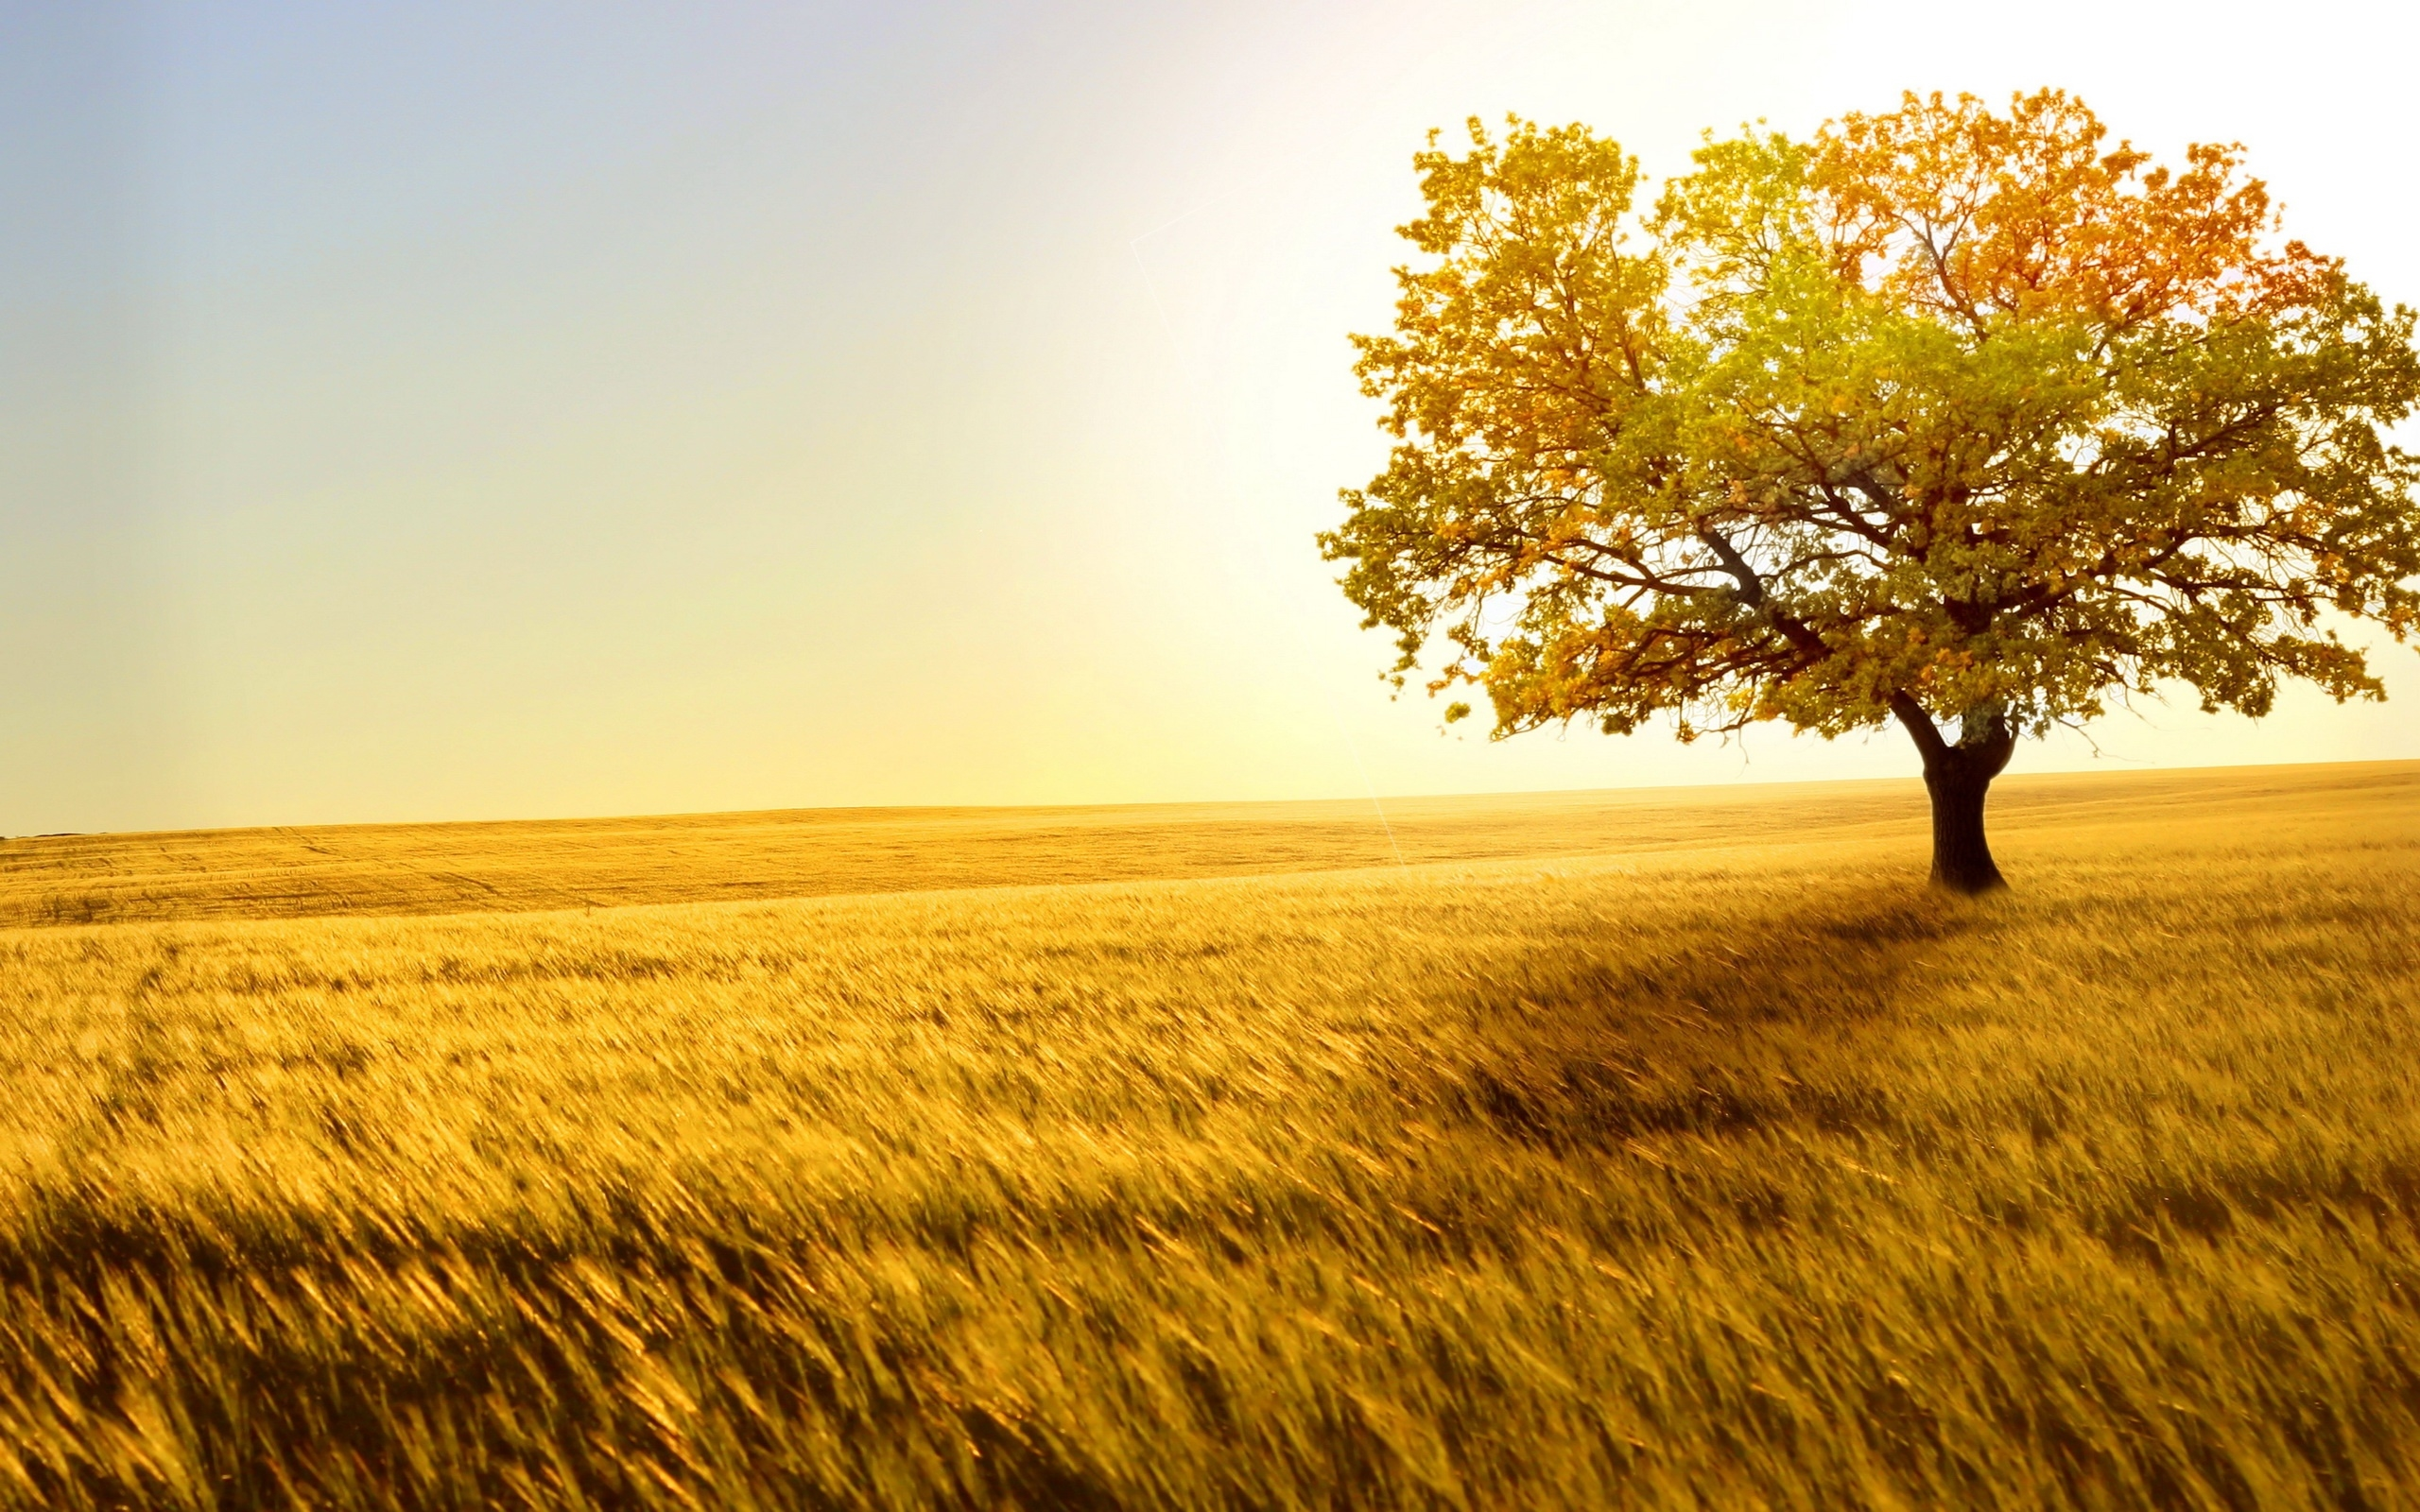 nature powerpoint slide template free, yellow tree and wheat #1568